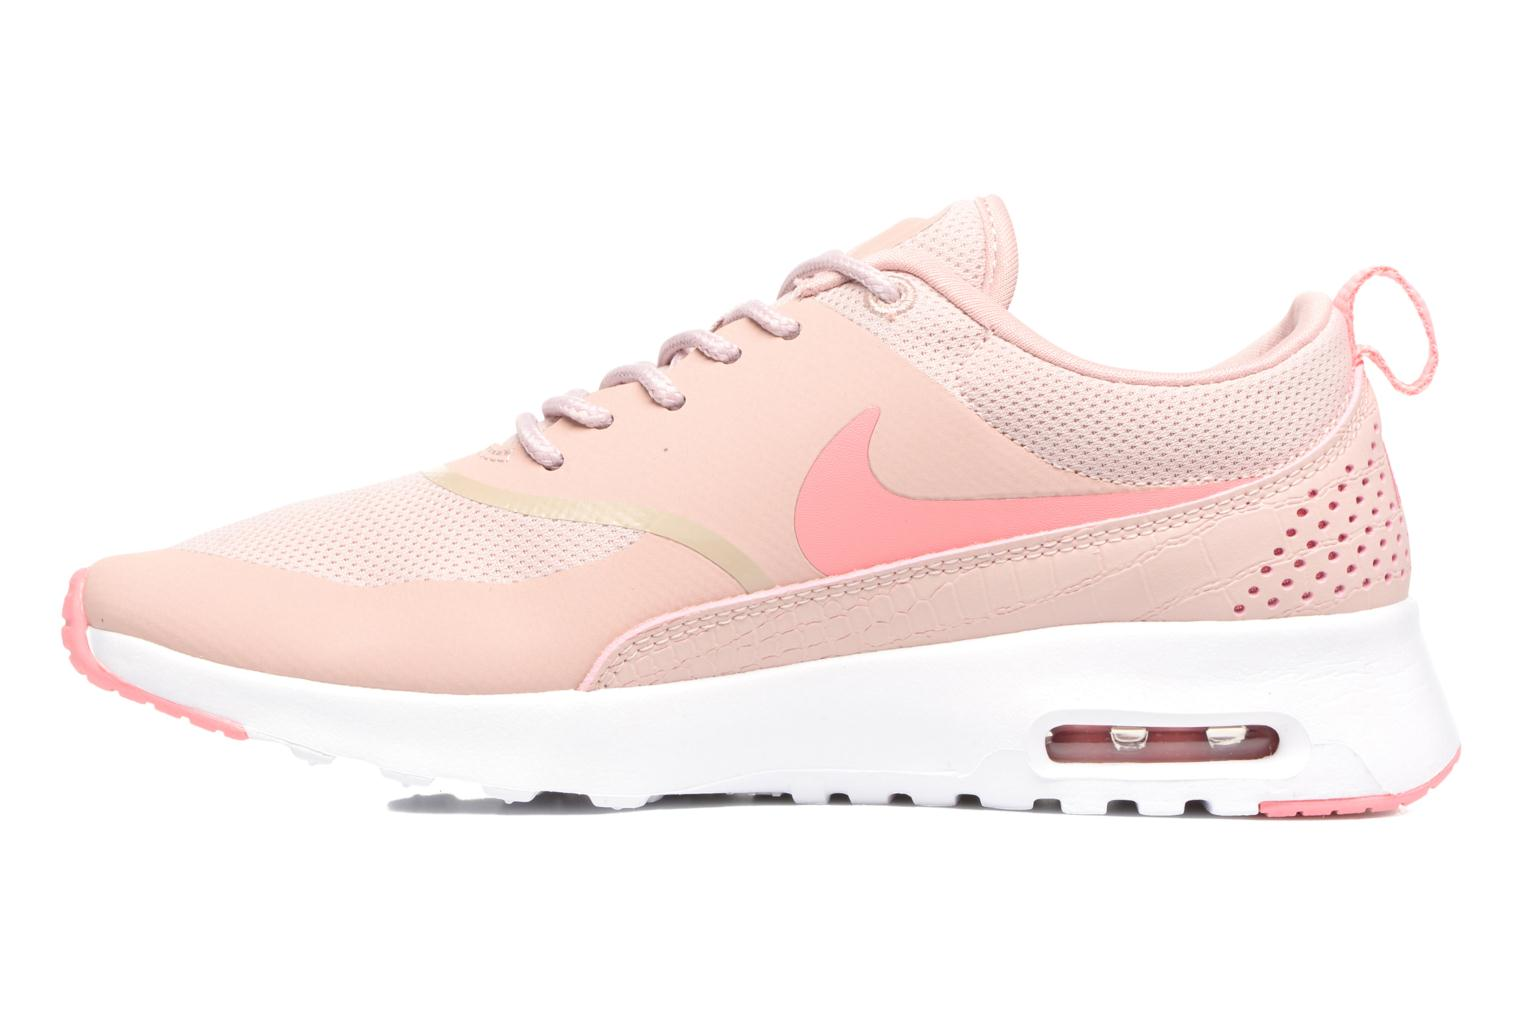 Wmns Nike Air Max Thea Pink Oxford/Bright Melon-White